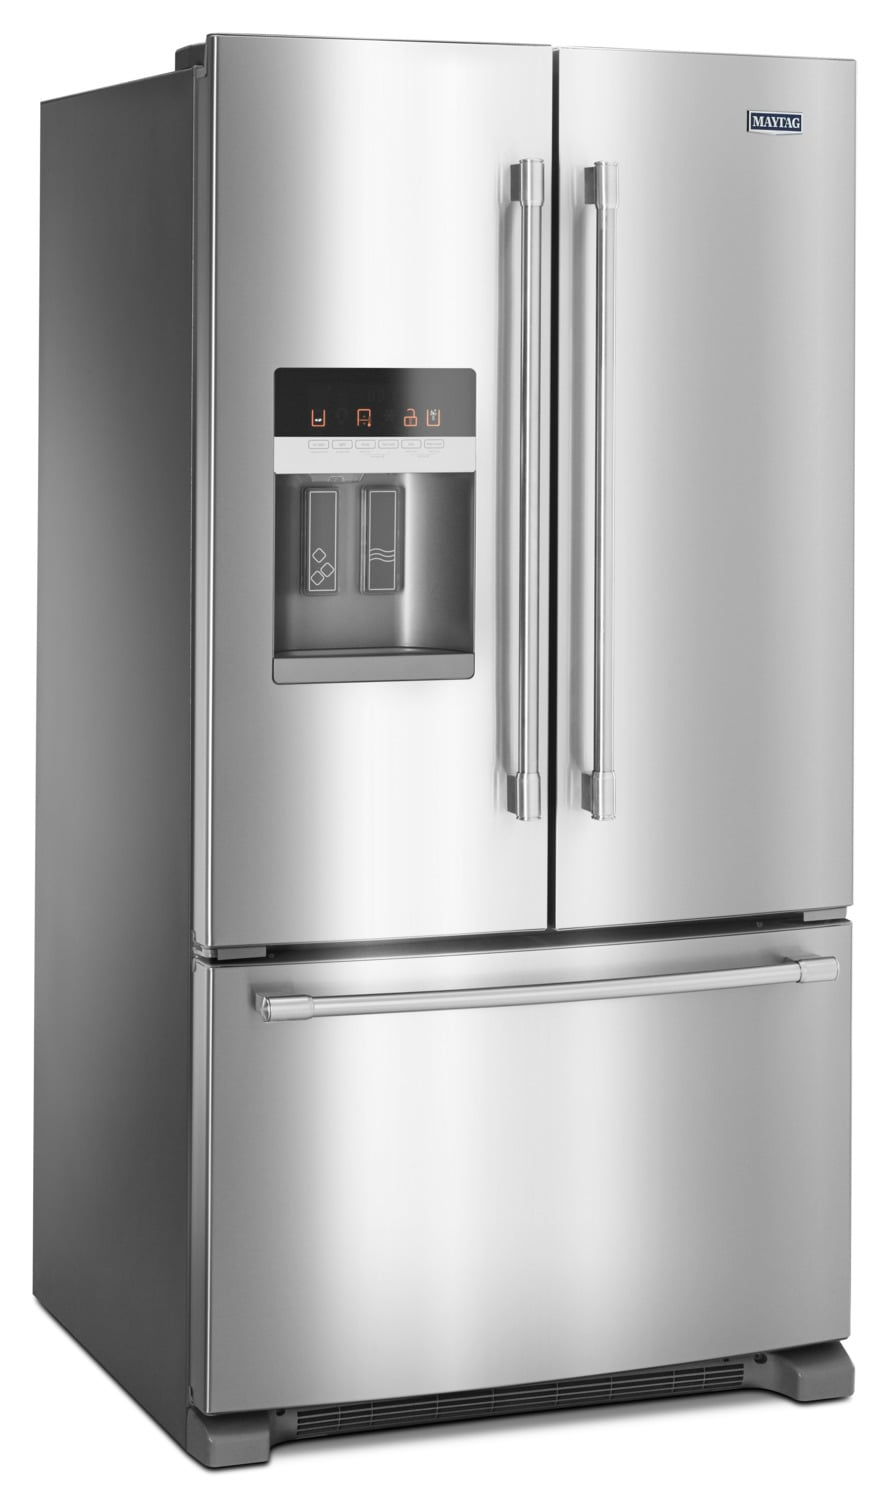 maytag stainless steel french door refrigerator 25 cu ft mfi2570fez leon 39 s. Black Bedroom Furniture Sets. Home Design Ideas